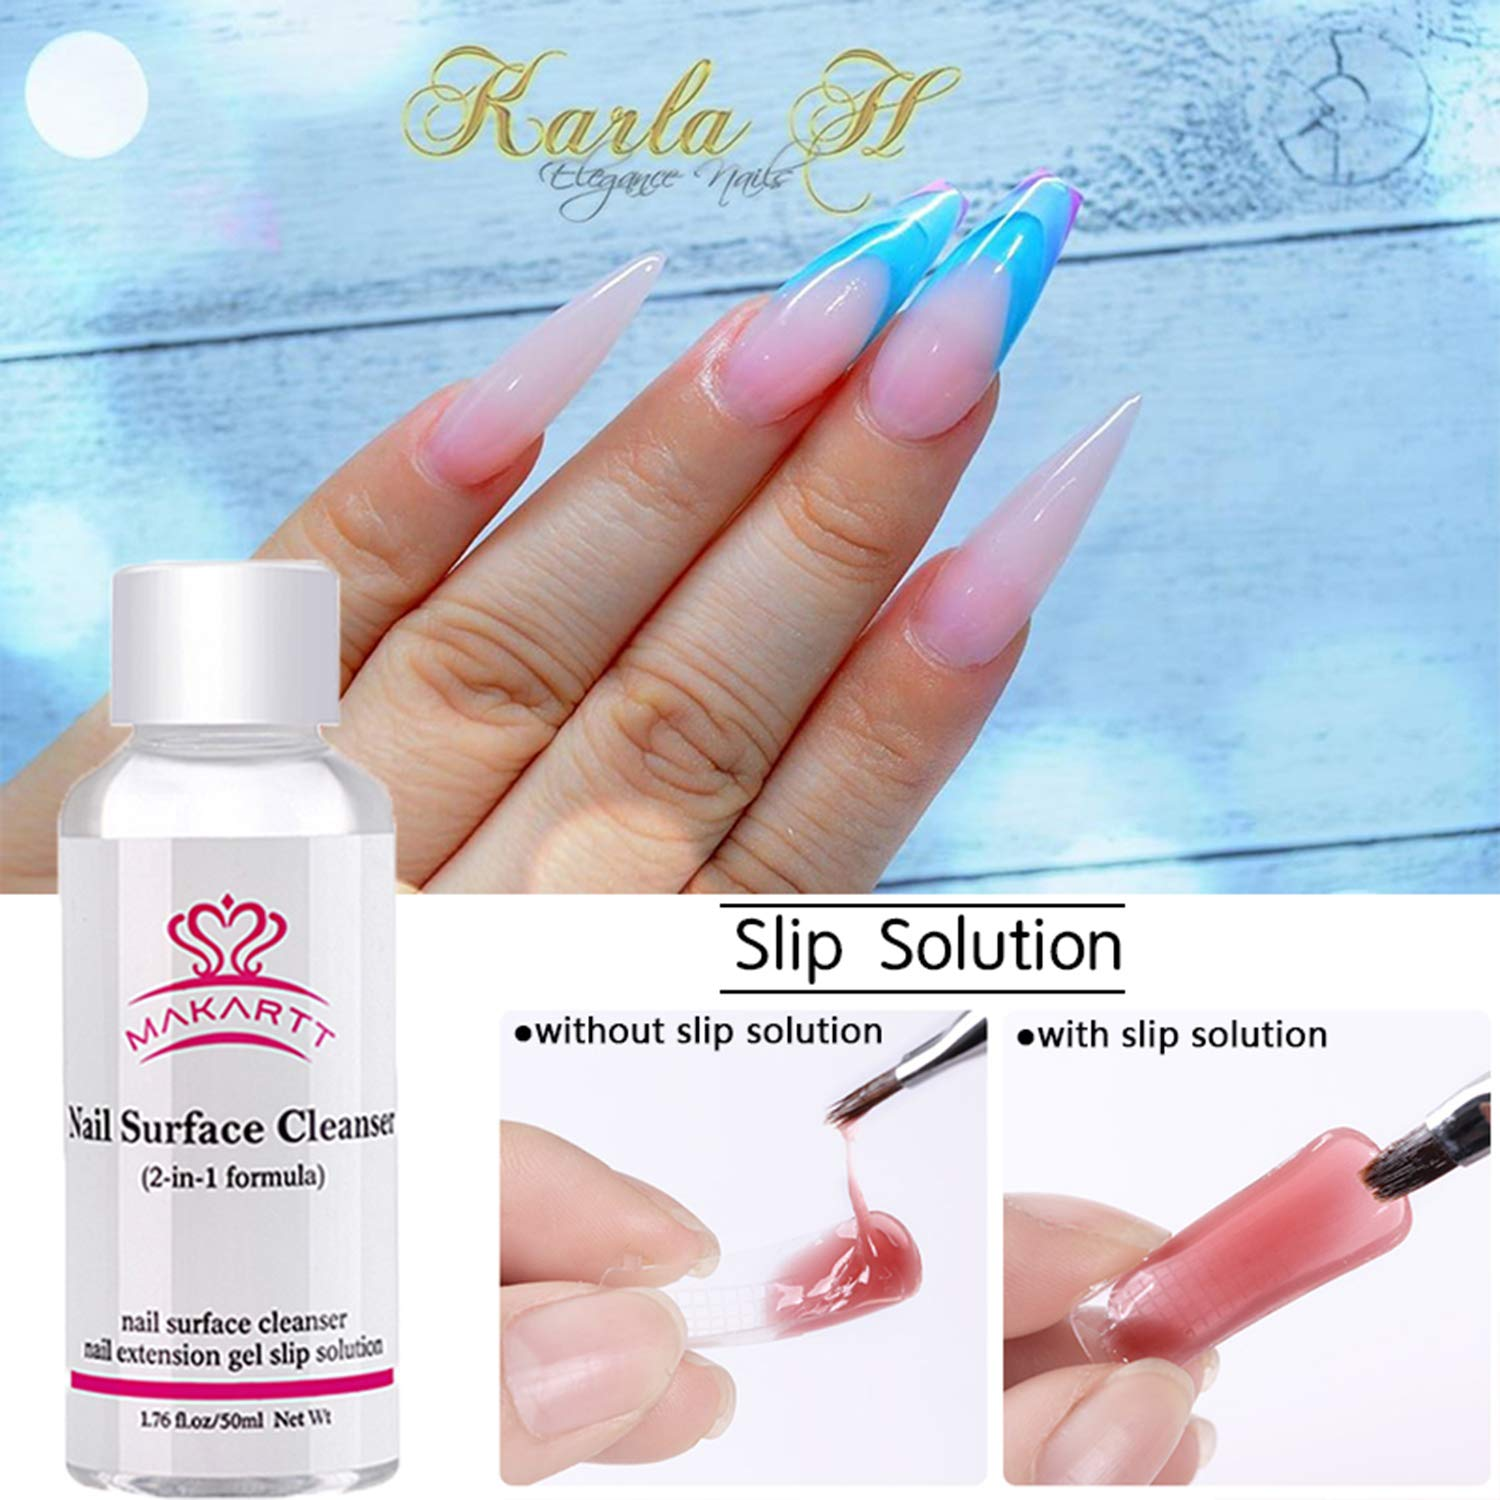 2-in-1 Formula Nail Surface Cleansing and Slip Solution for Polygel Extension